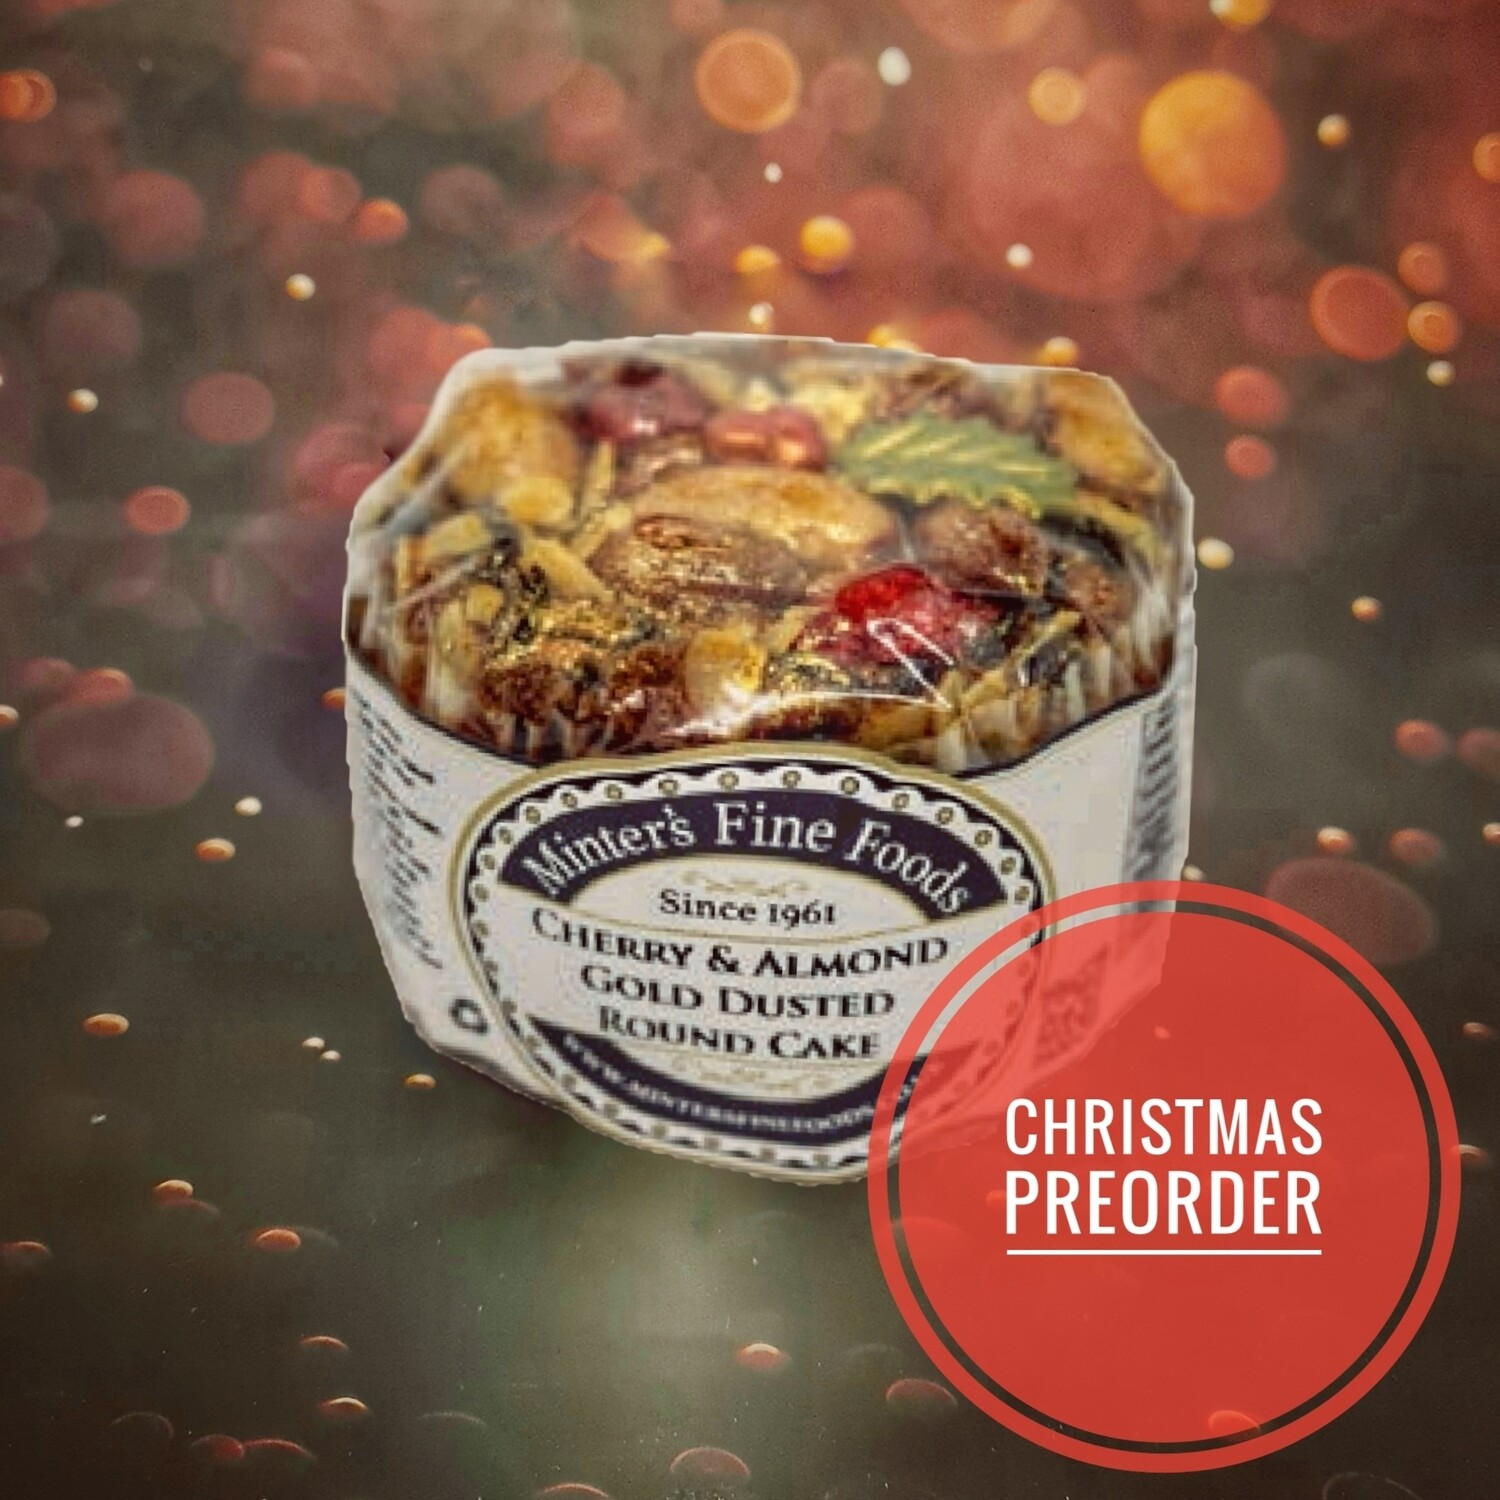 Preorder Cherry & Almond Gold Dusted Christmas Cake